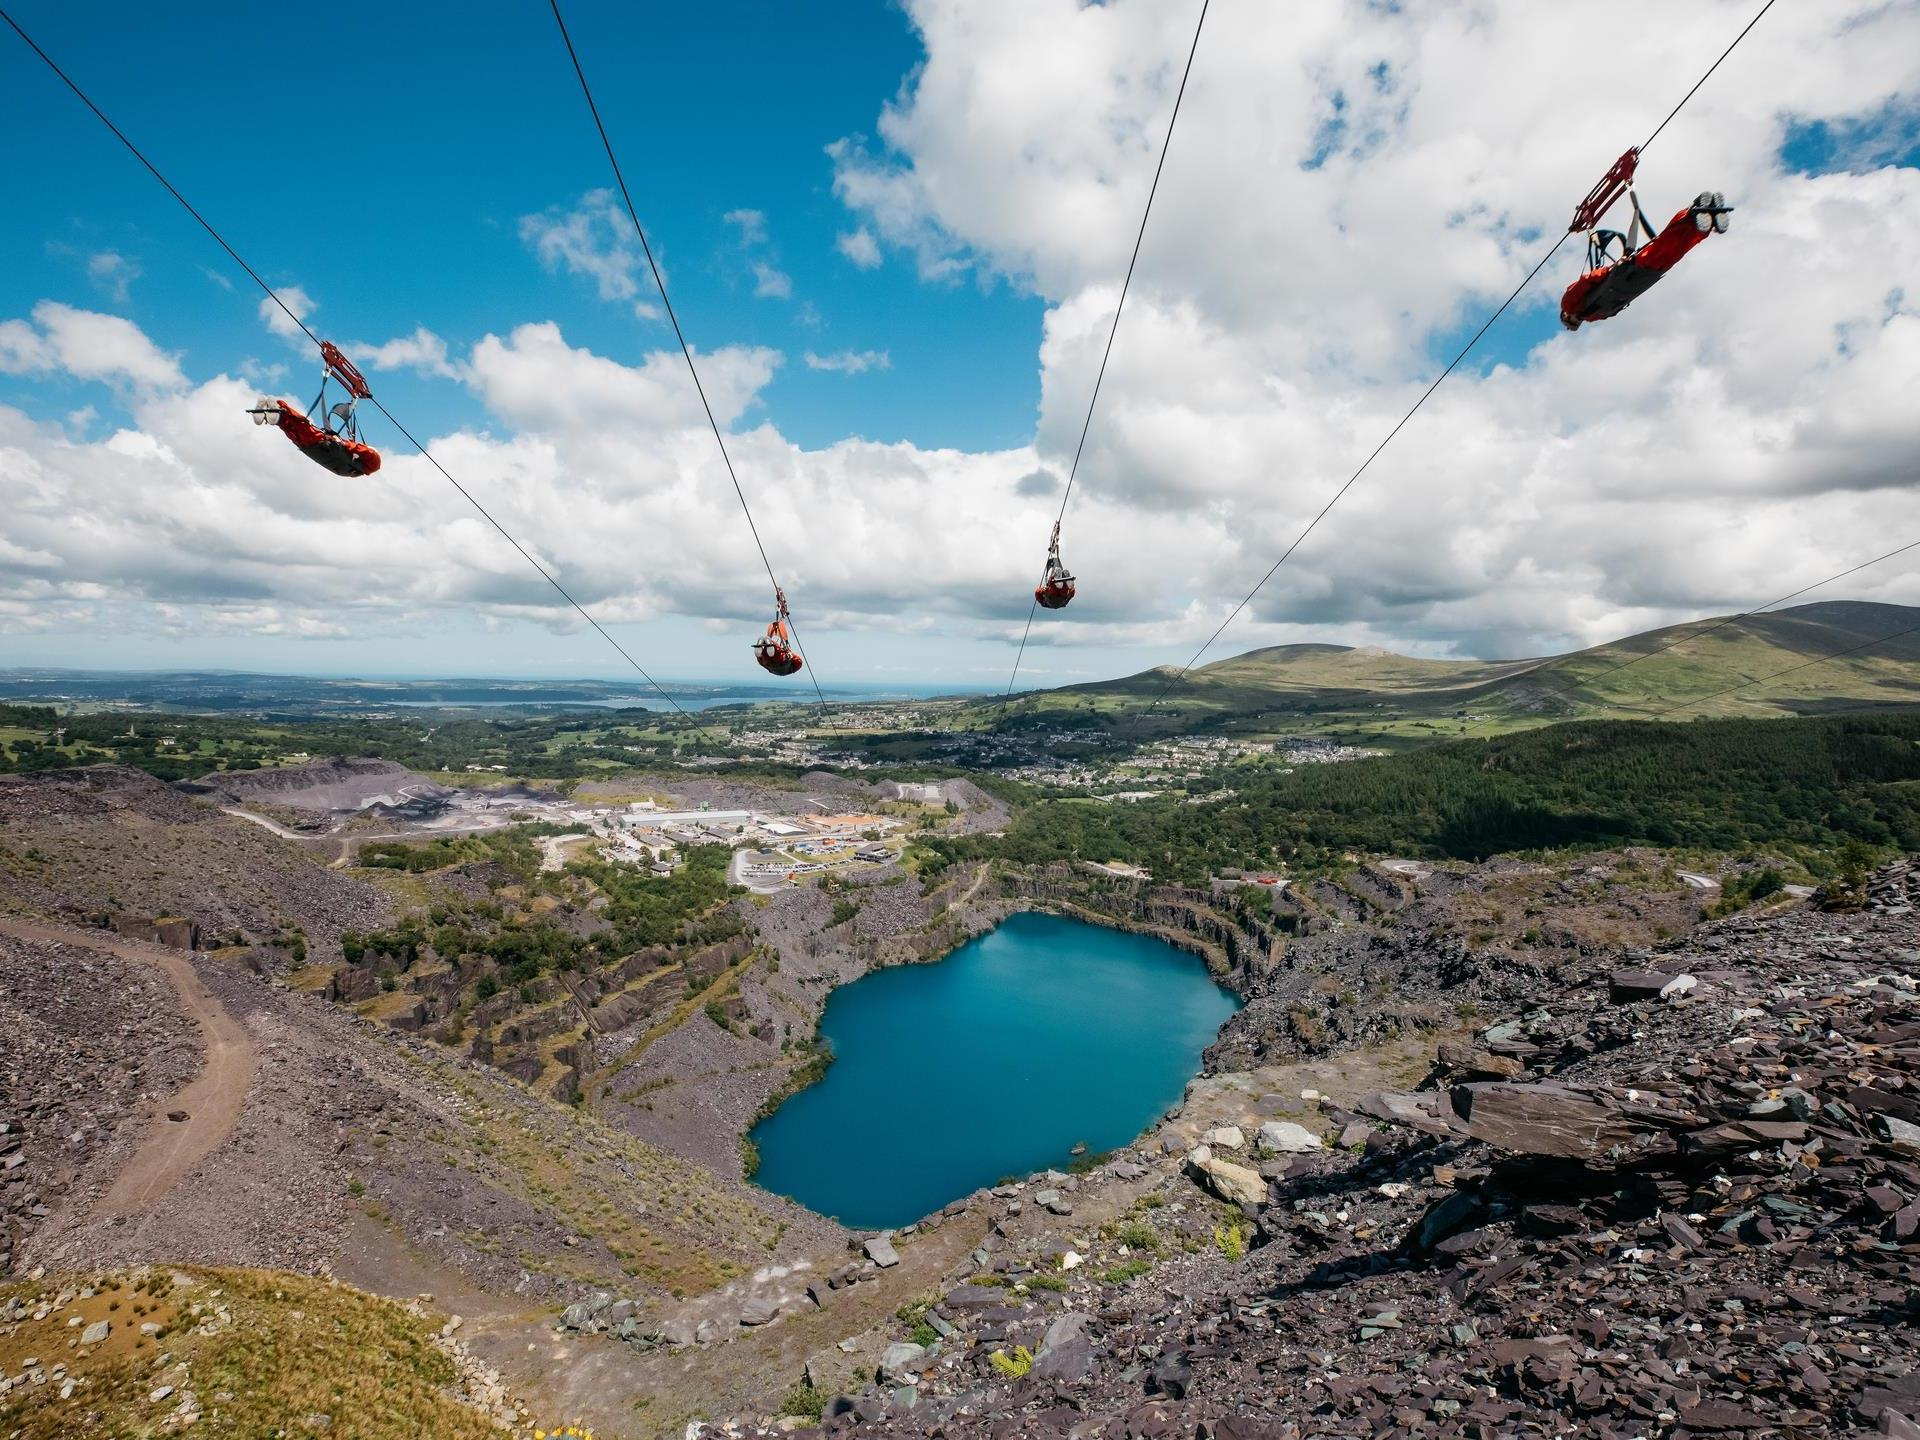 Penrhyn Quarry, home to Velocity 2